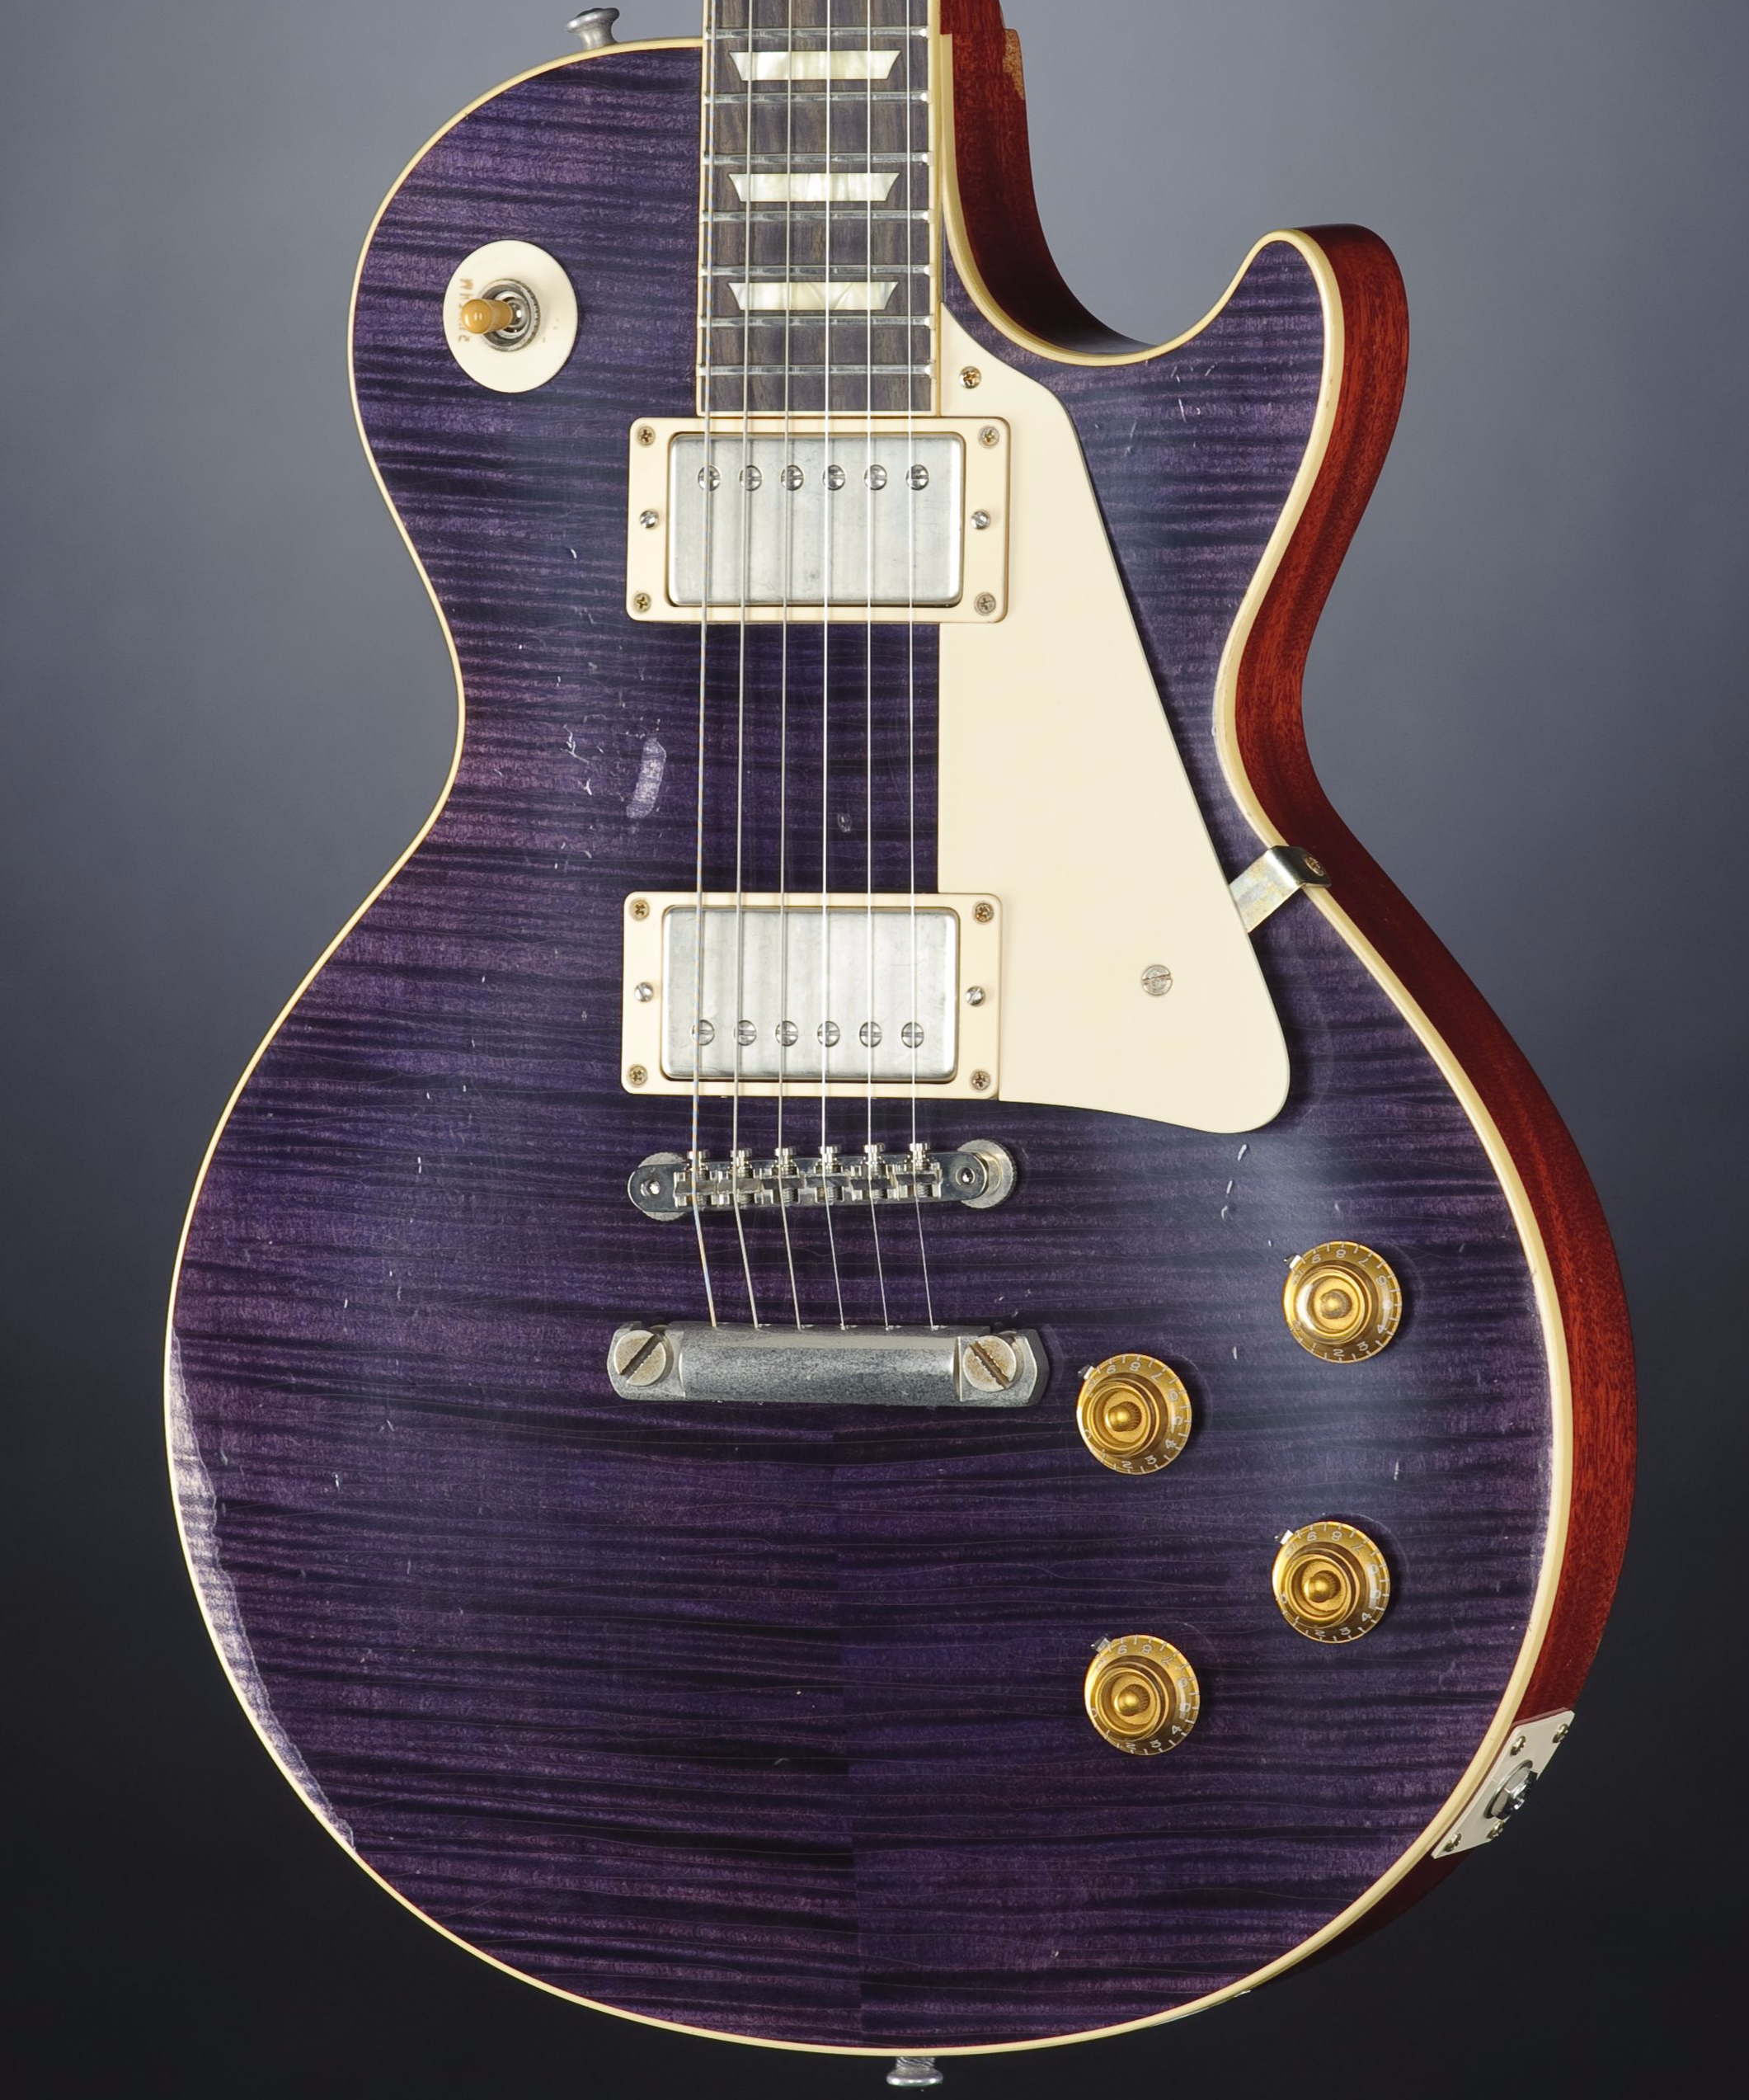 GIBSON 1959 Les Paul Heavy Aged Plum Stain Body